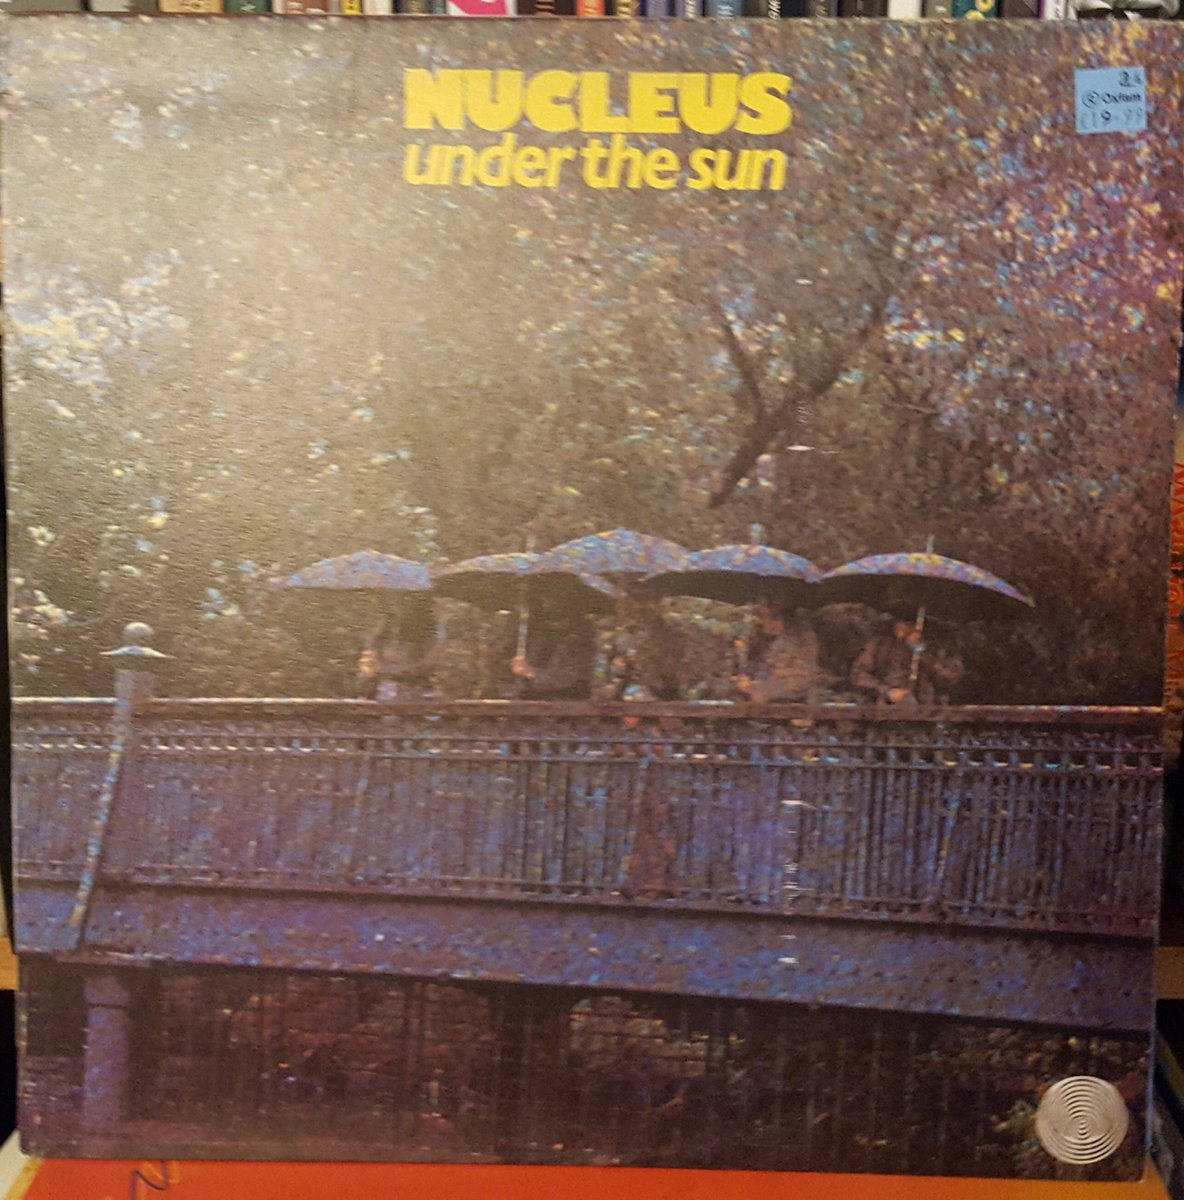 Local Oxfam has had a run on Nucleus. Th...